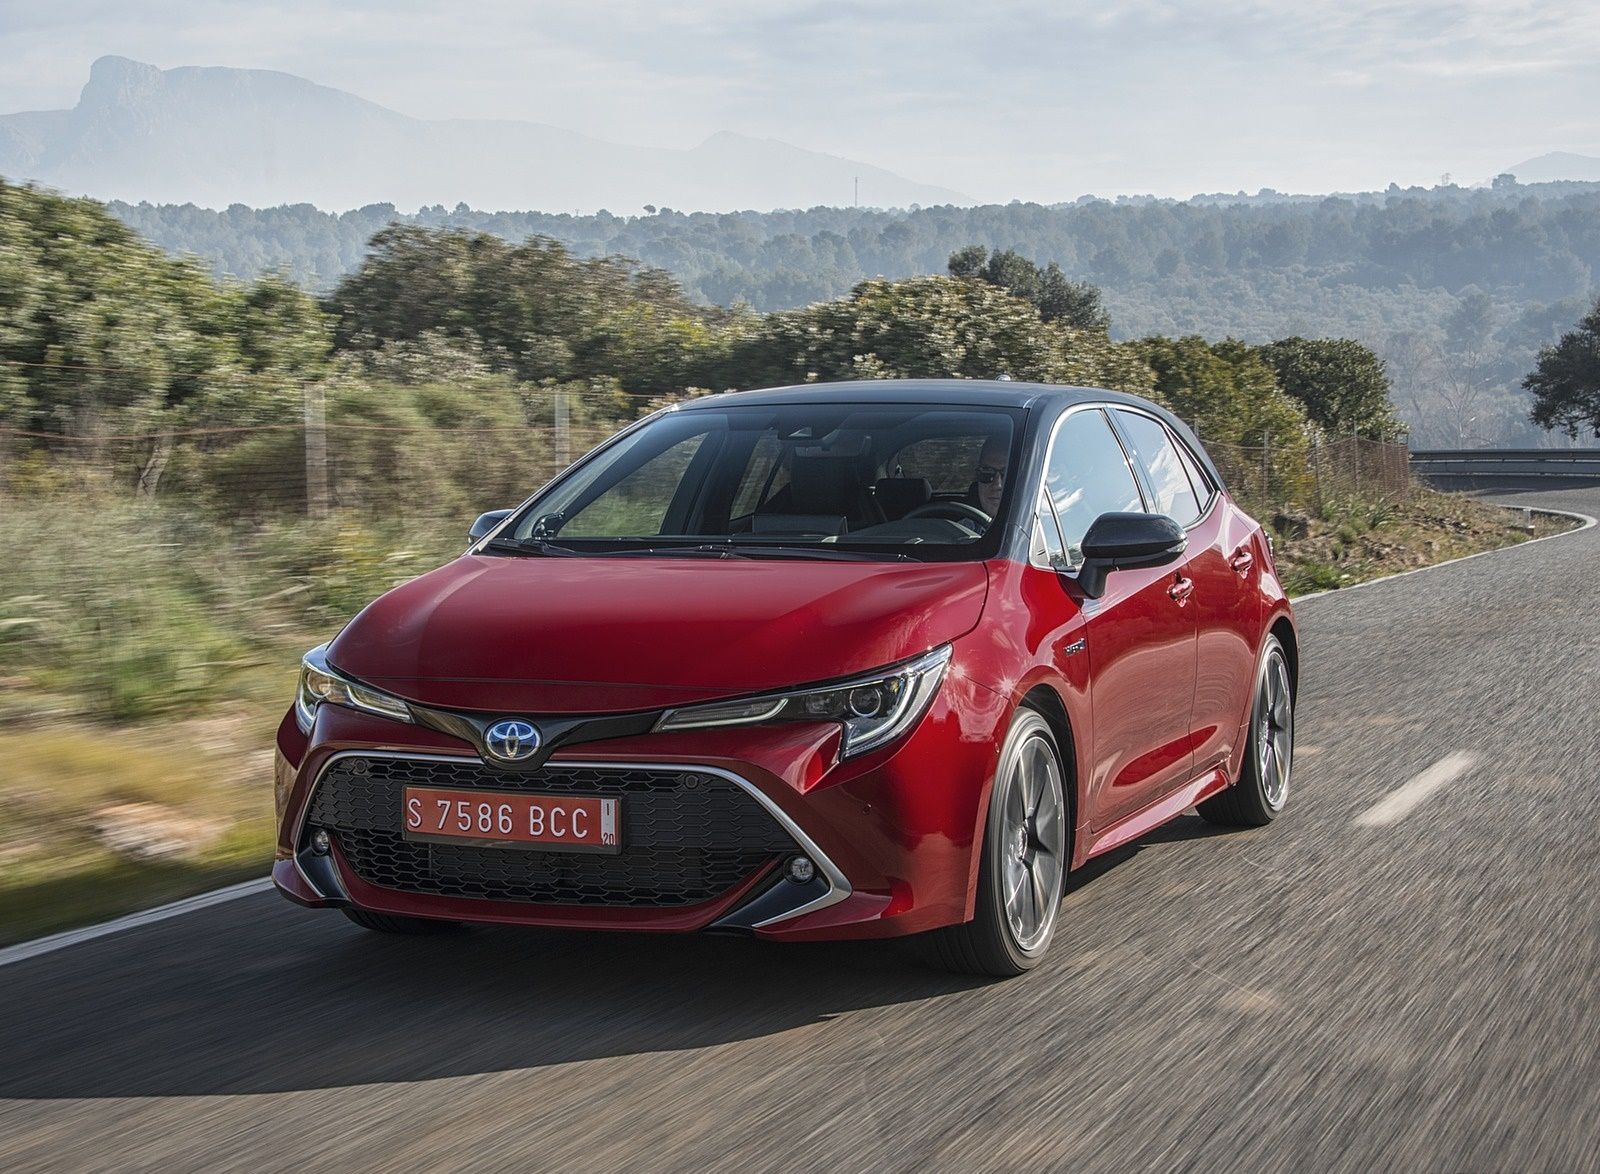 2019 Toyota Corolla Hatchback Hybrid 2.0L Red bitone (EU-Spec) Front Three-Quarter Wallpapers (9)